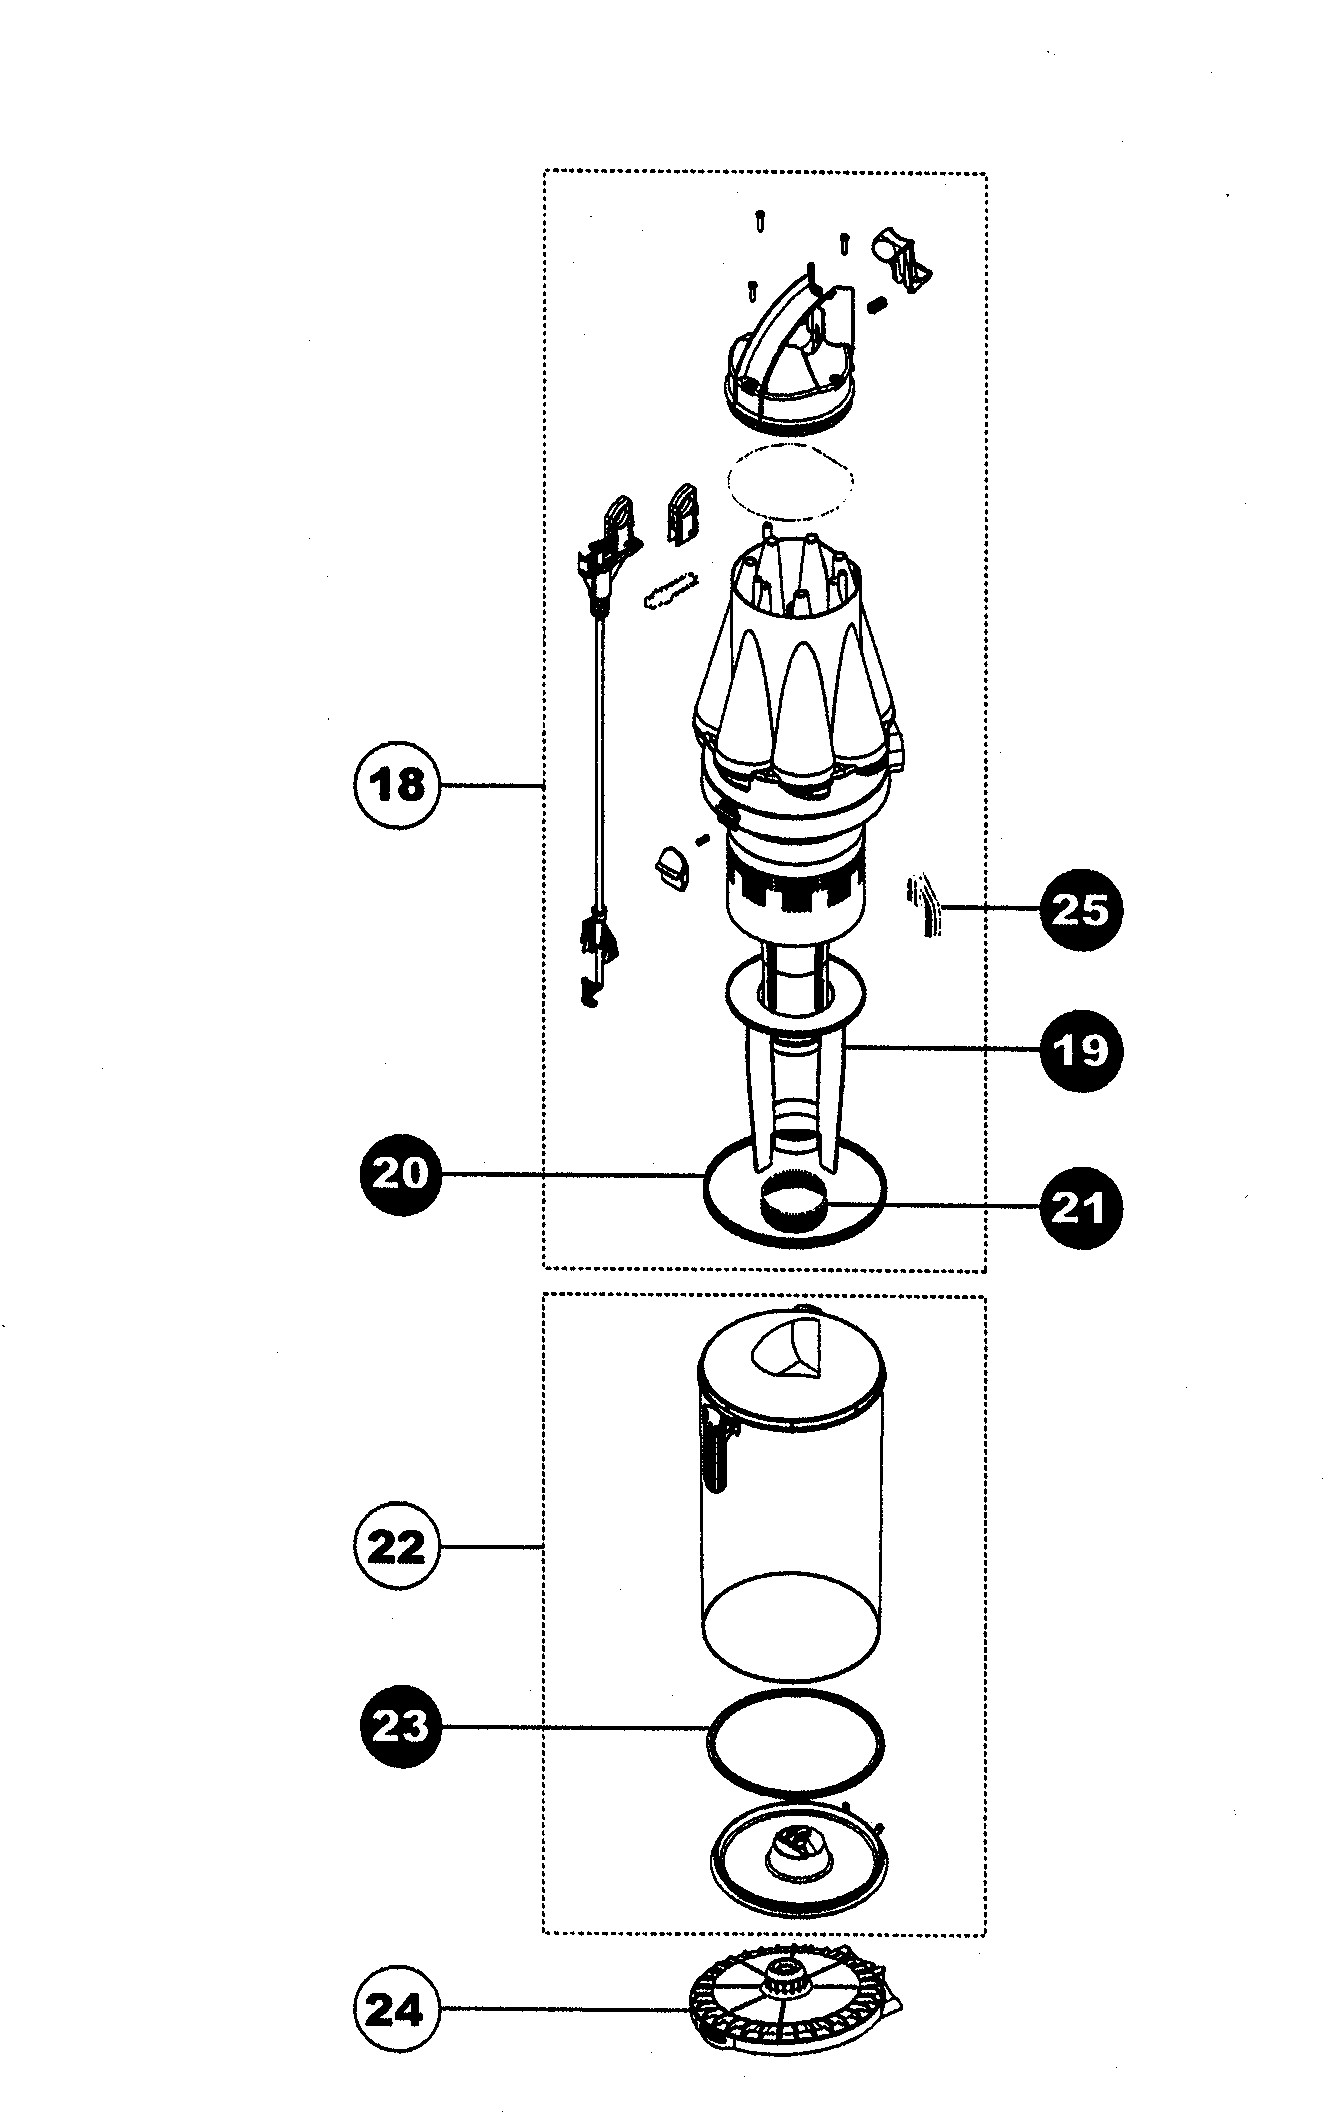 Dyson Dc07 Parts Diagram Dc40 Oreck Vac Central Wiring Vacuum Exploded Drawings Diagrams Schematic Of